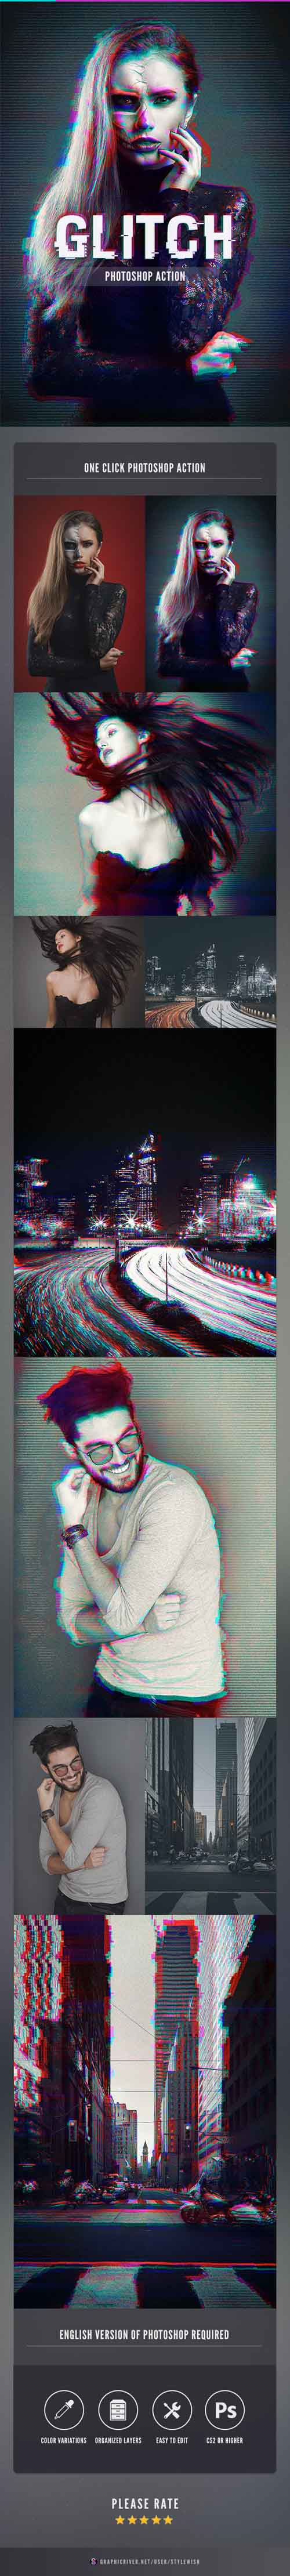 Glitch Photoshop Action 15800617